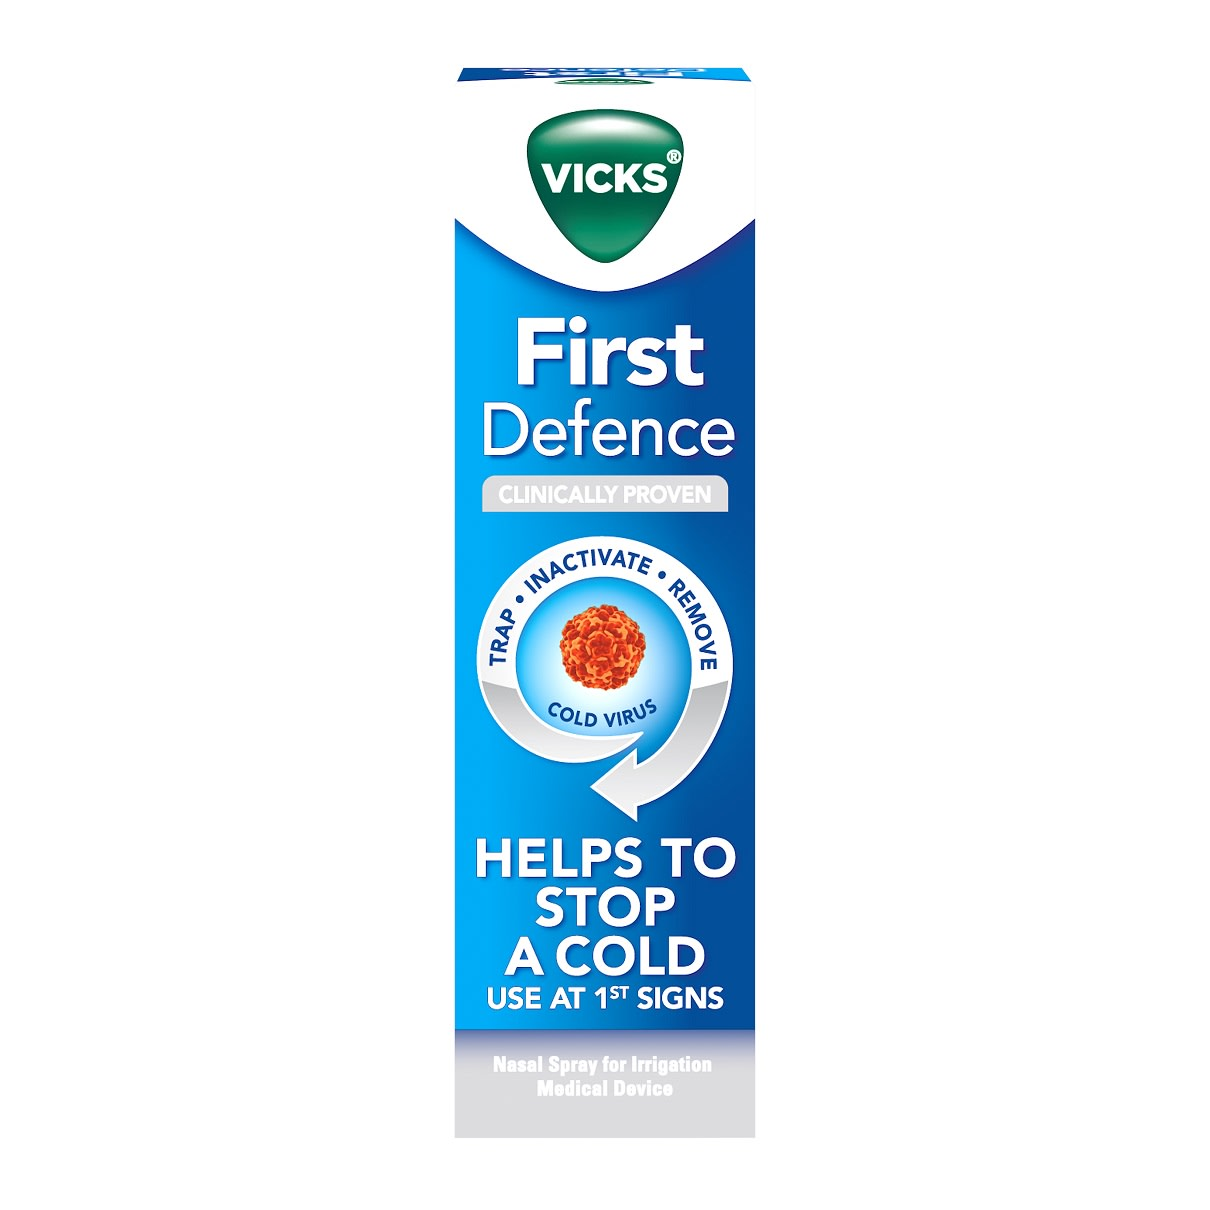 Vicks First Defence Primary Image